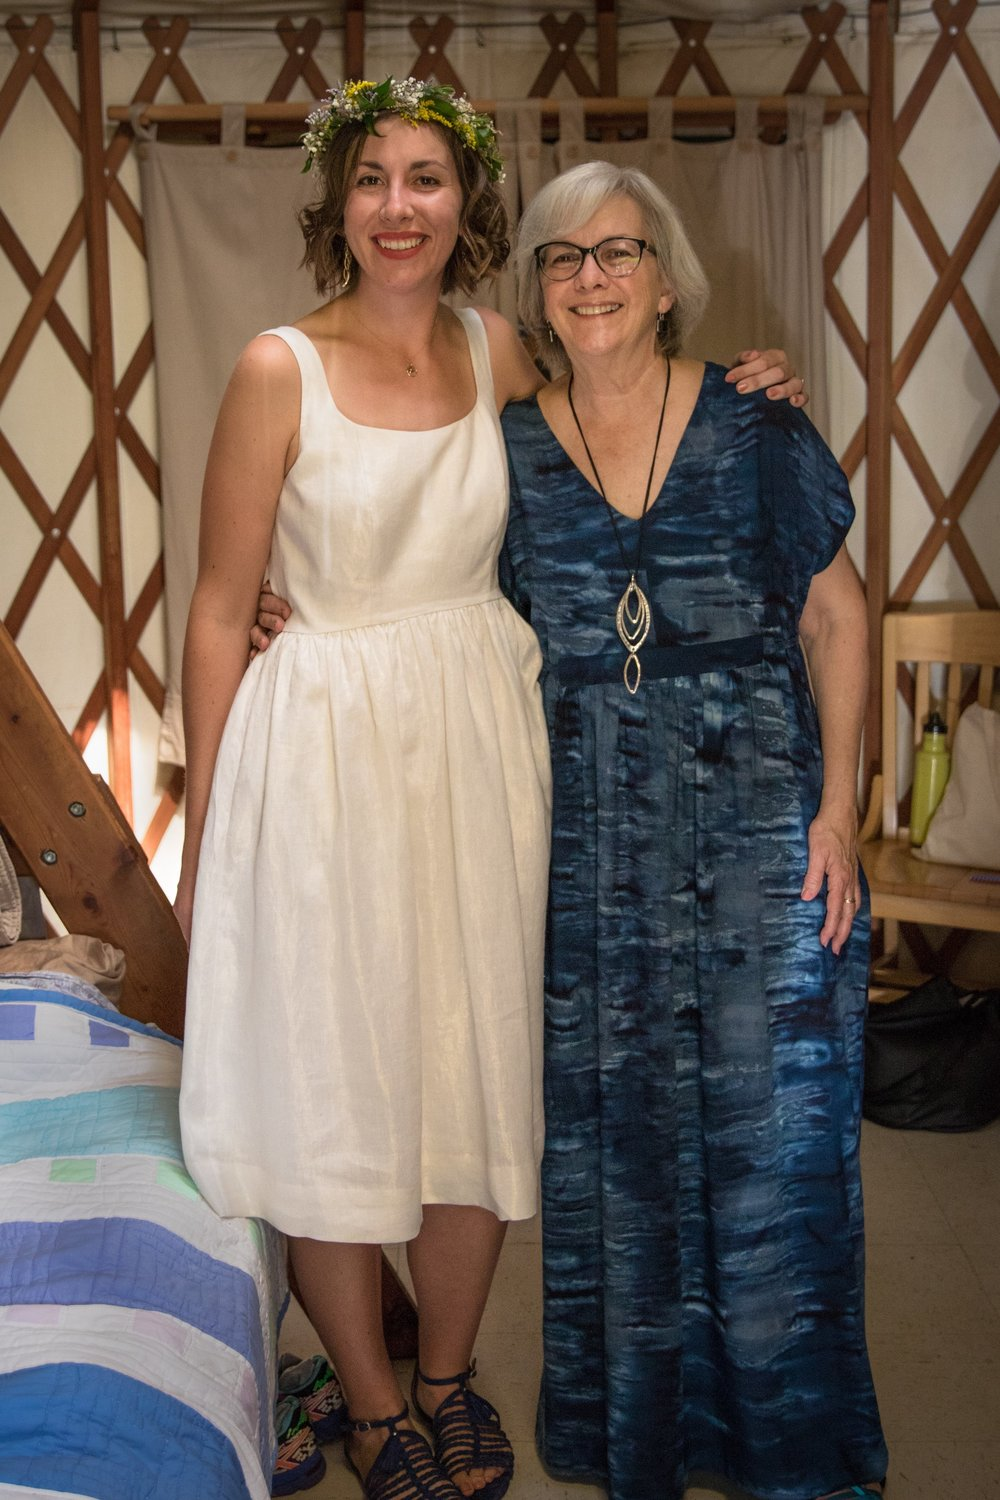 Me freshly zipped in my golden dress and my mom in her handmade rayon Closet Case Charlie Caftan!